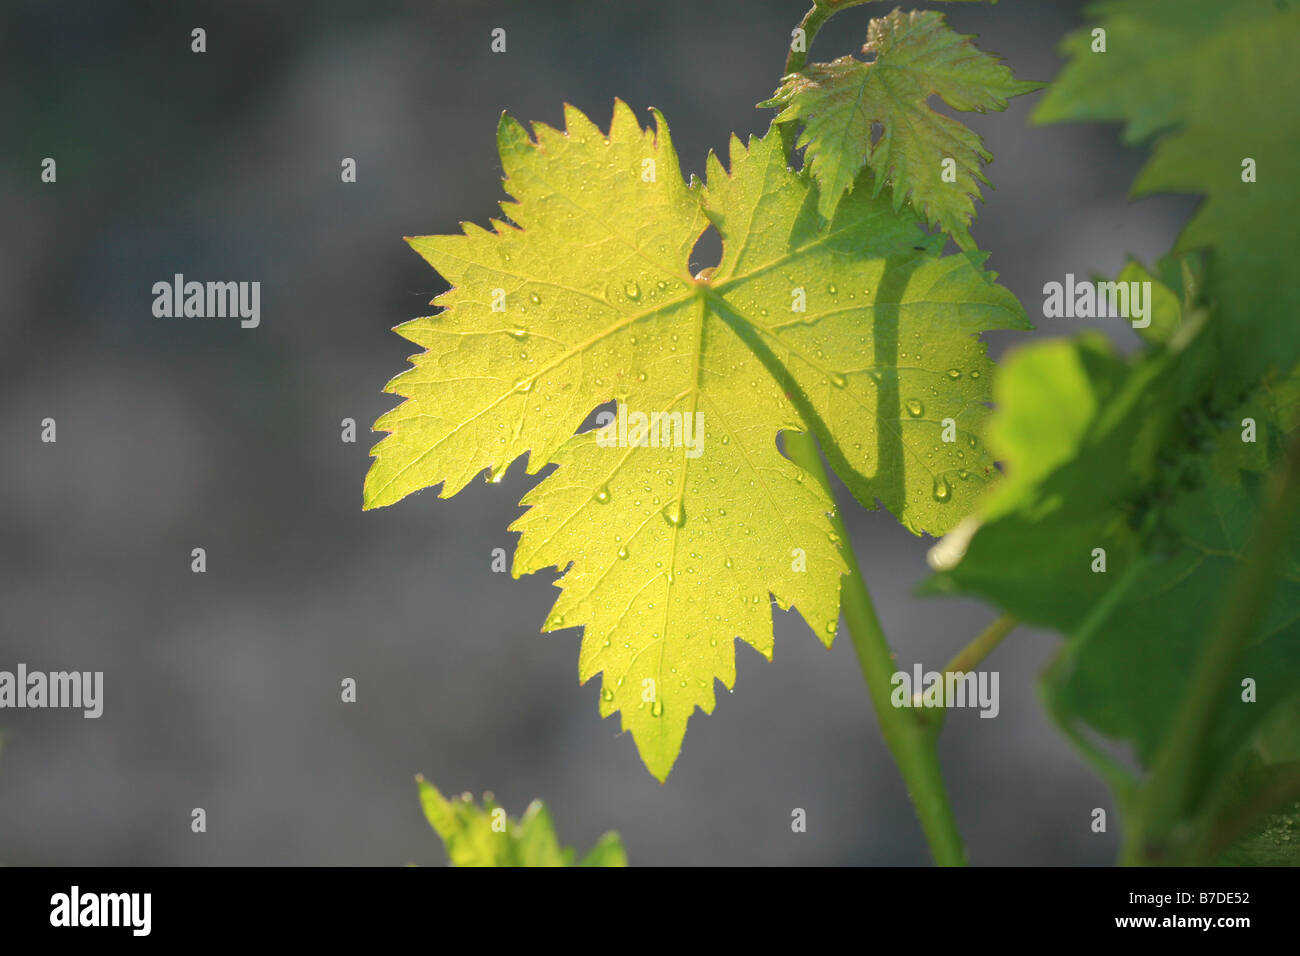 vine leaves in Rioja region, Spain - Stock Image